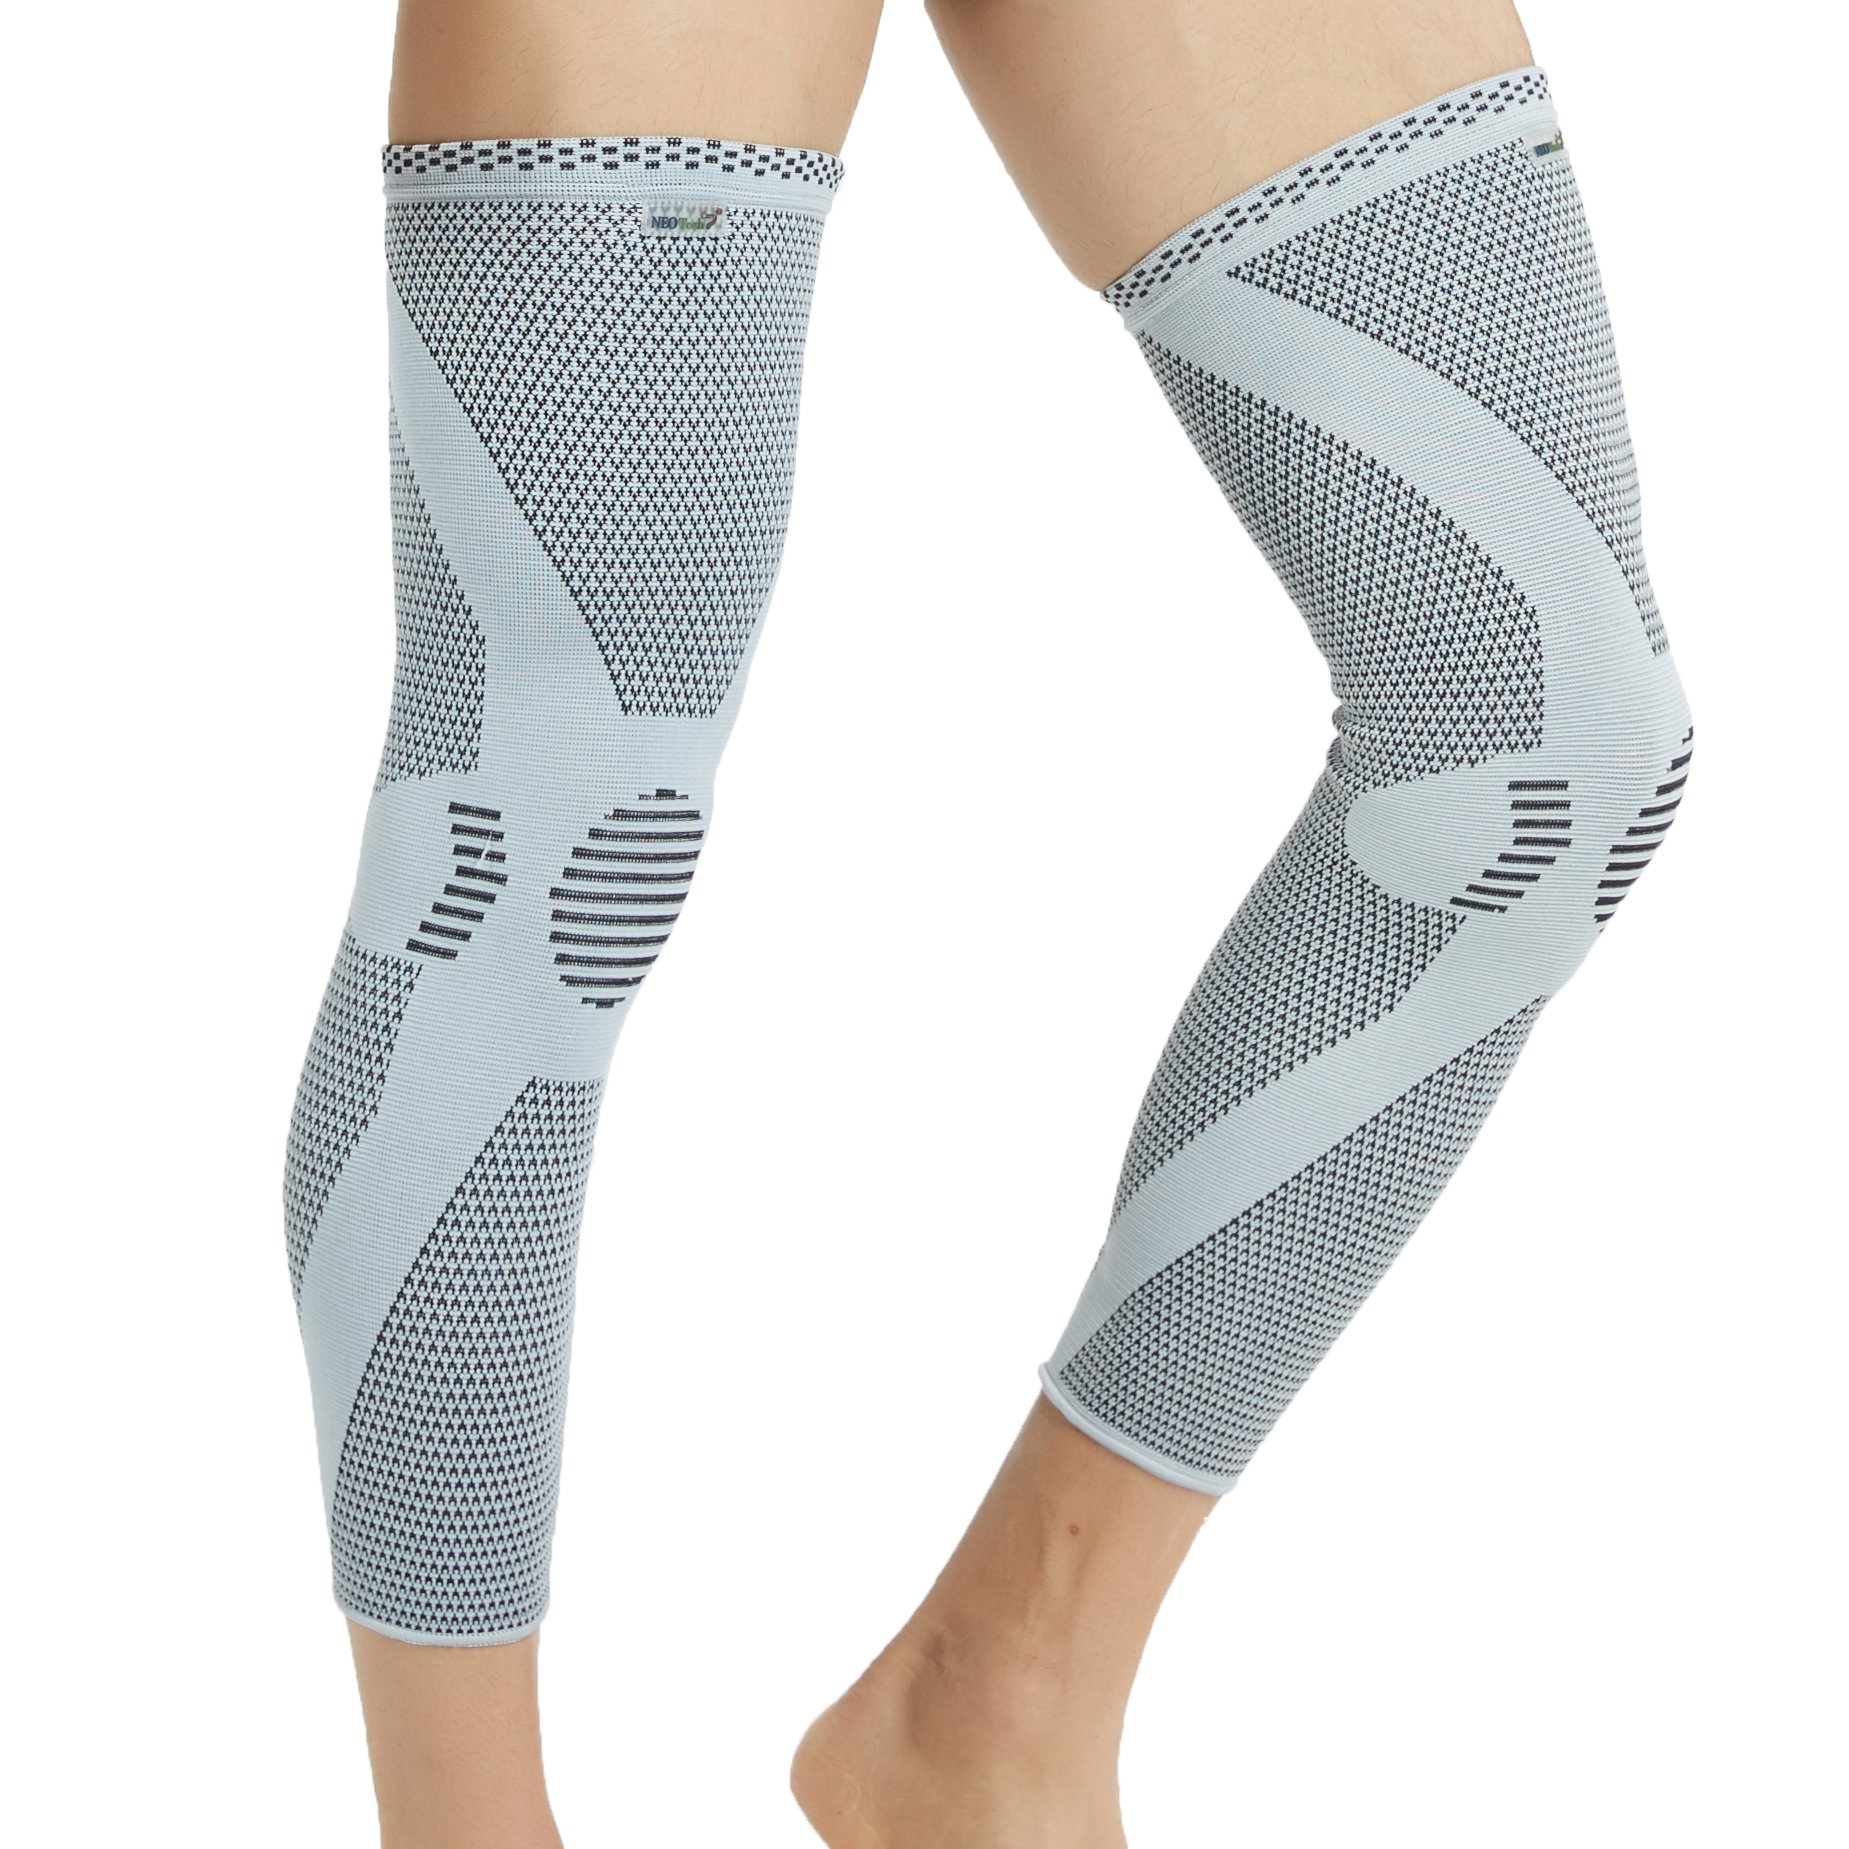 Neotech Care Leg and Knee Support Sleeve - Bamboo Fiber Knitted Fabric - Elastic & Breathable - Medium Compression - Size L - Grey Color - Package of 1 Unit